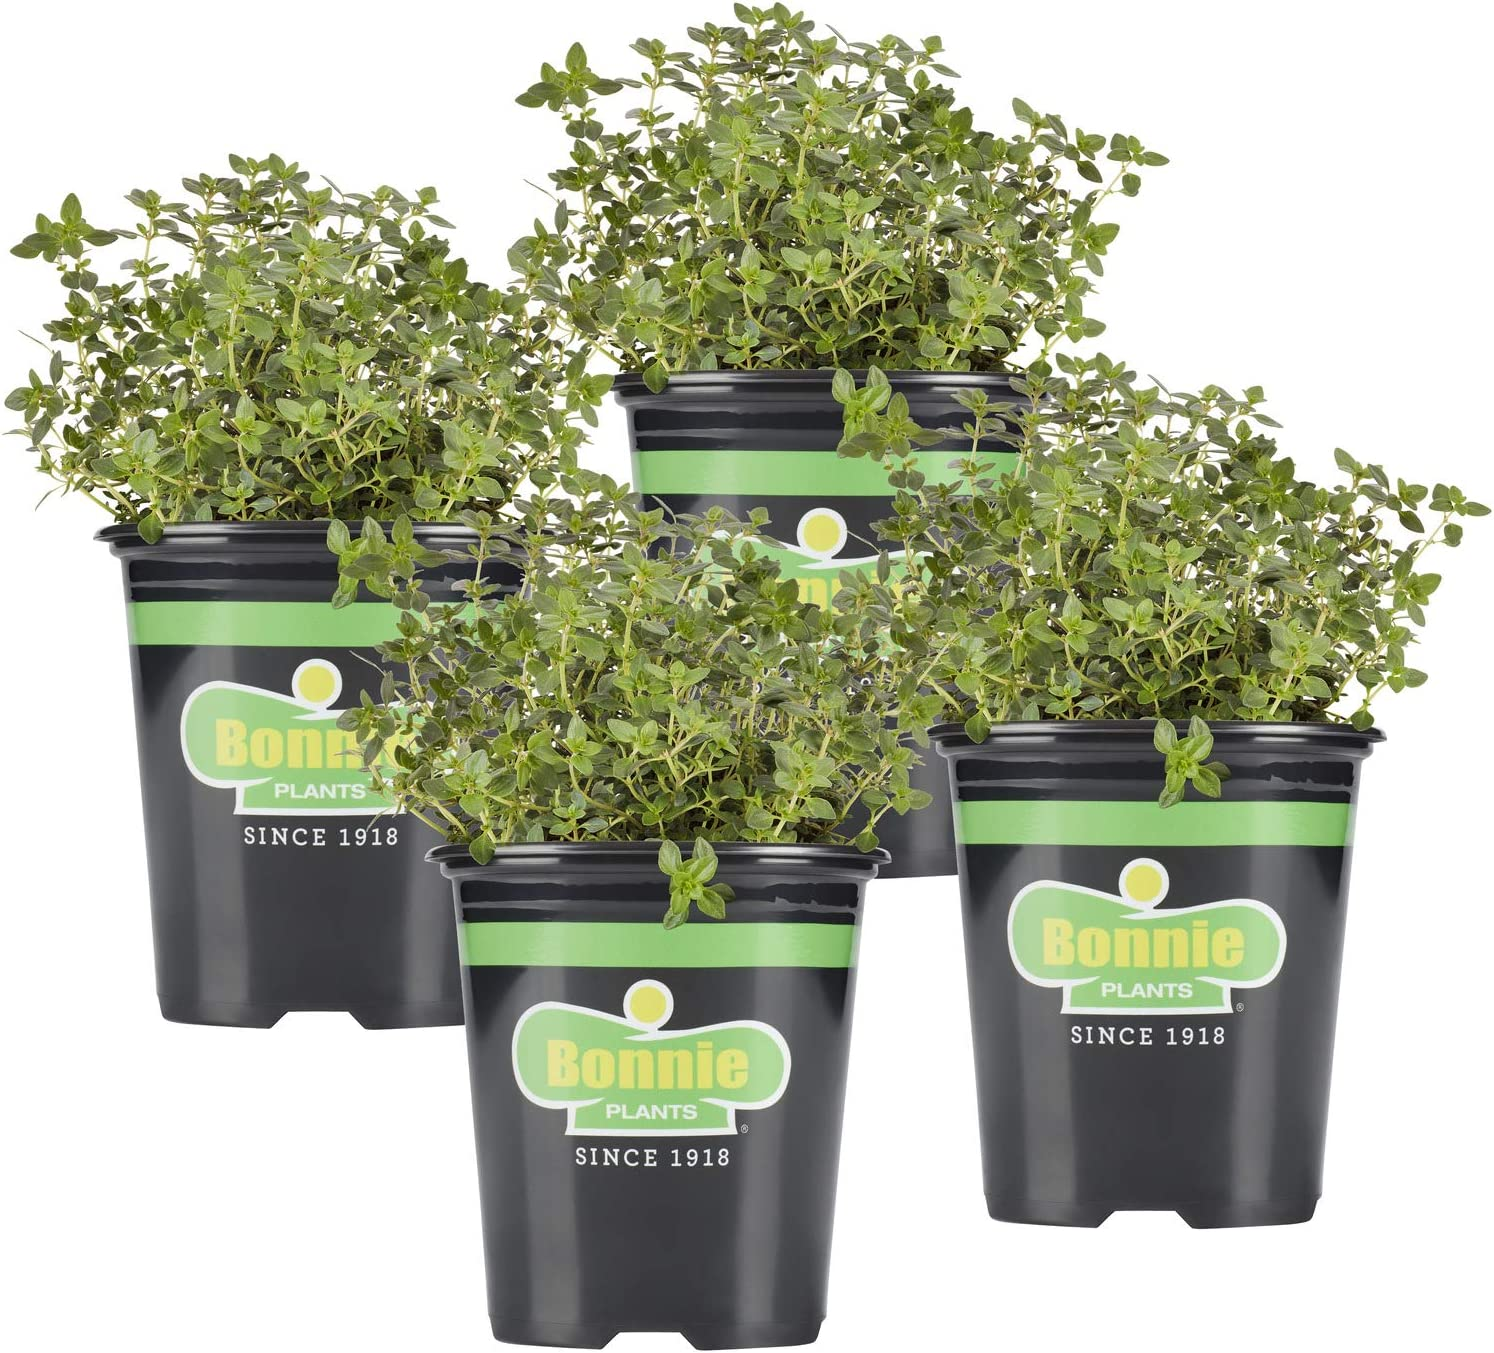 Bonnie Plants Lemon Thyme Live Herb Plants - 4 Pack, Perennial In Zones 7 to 9, Full Sun to Part Shade